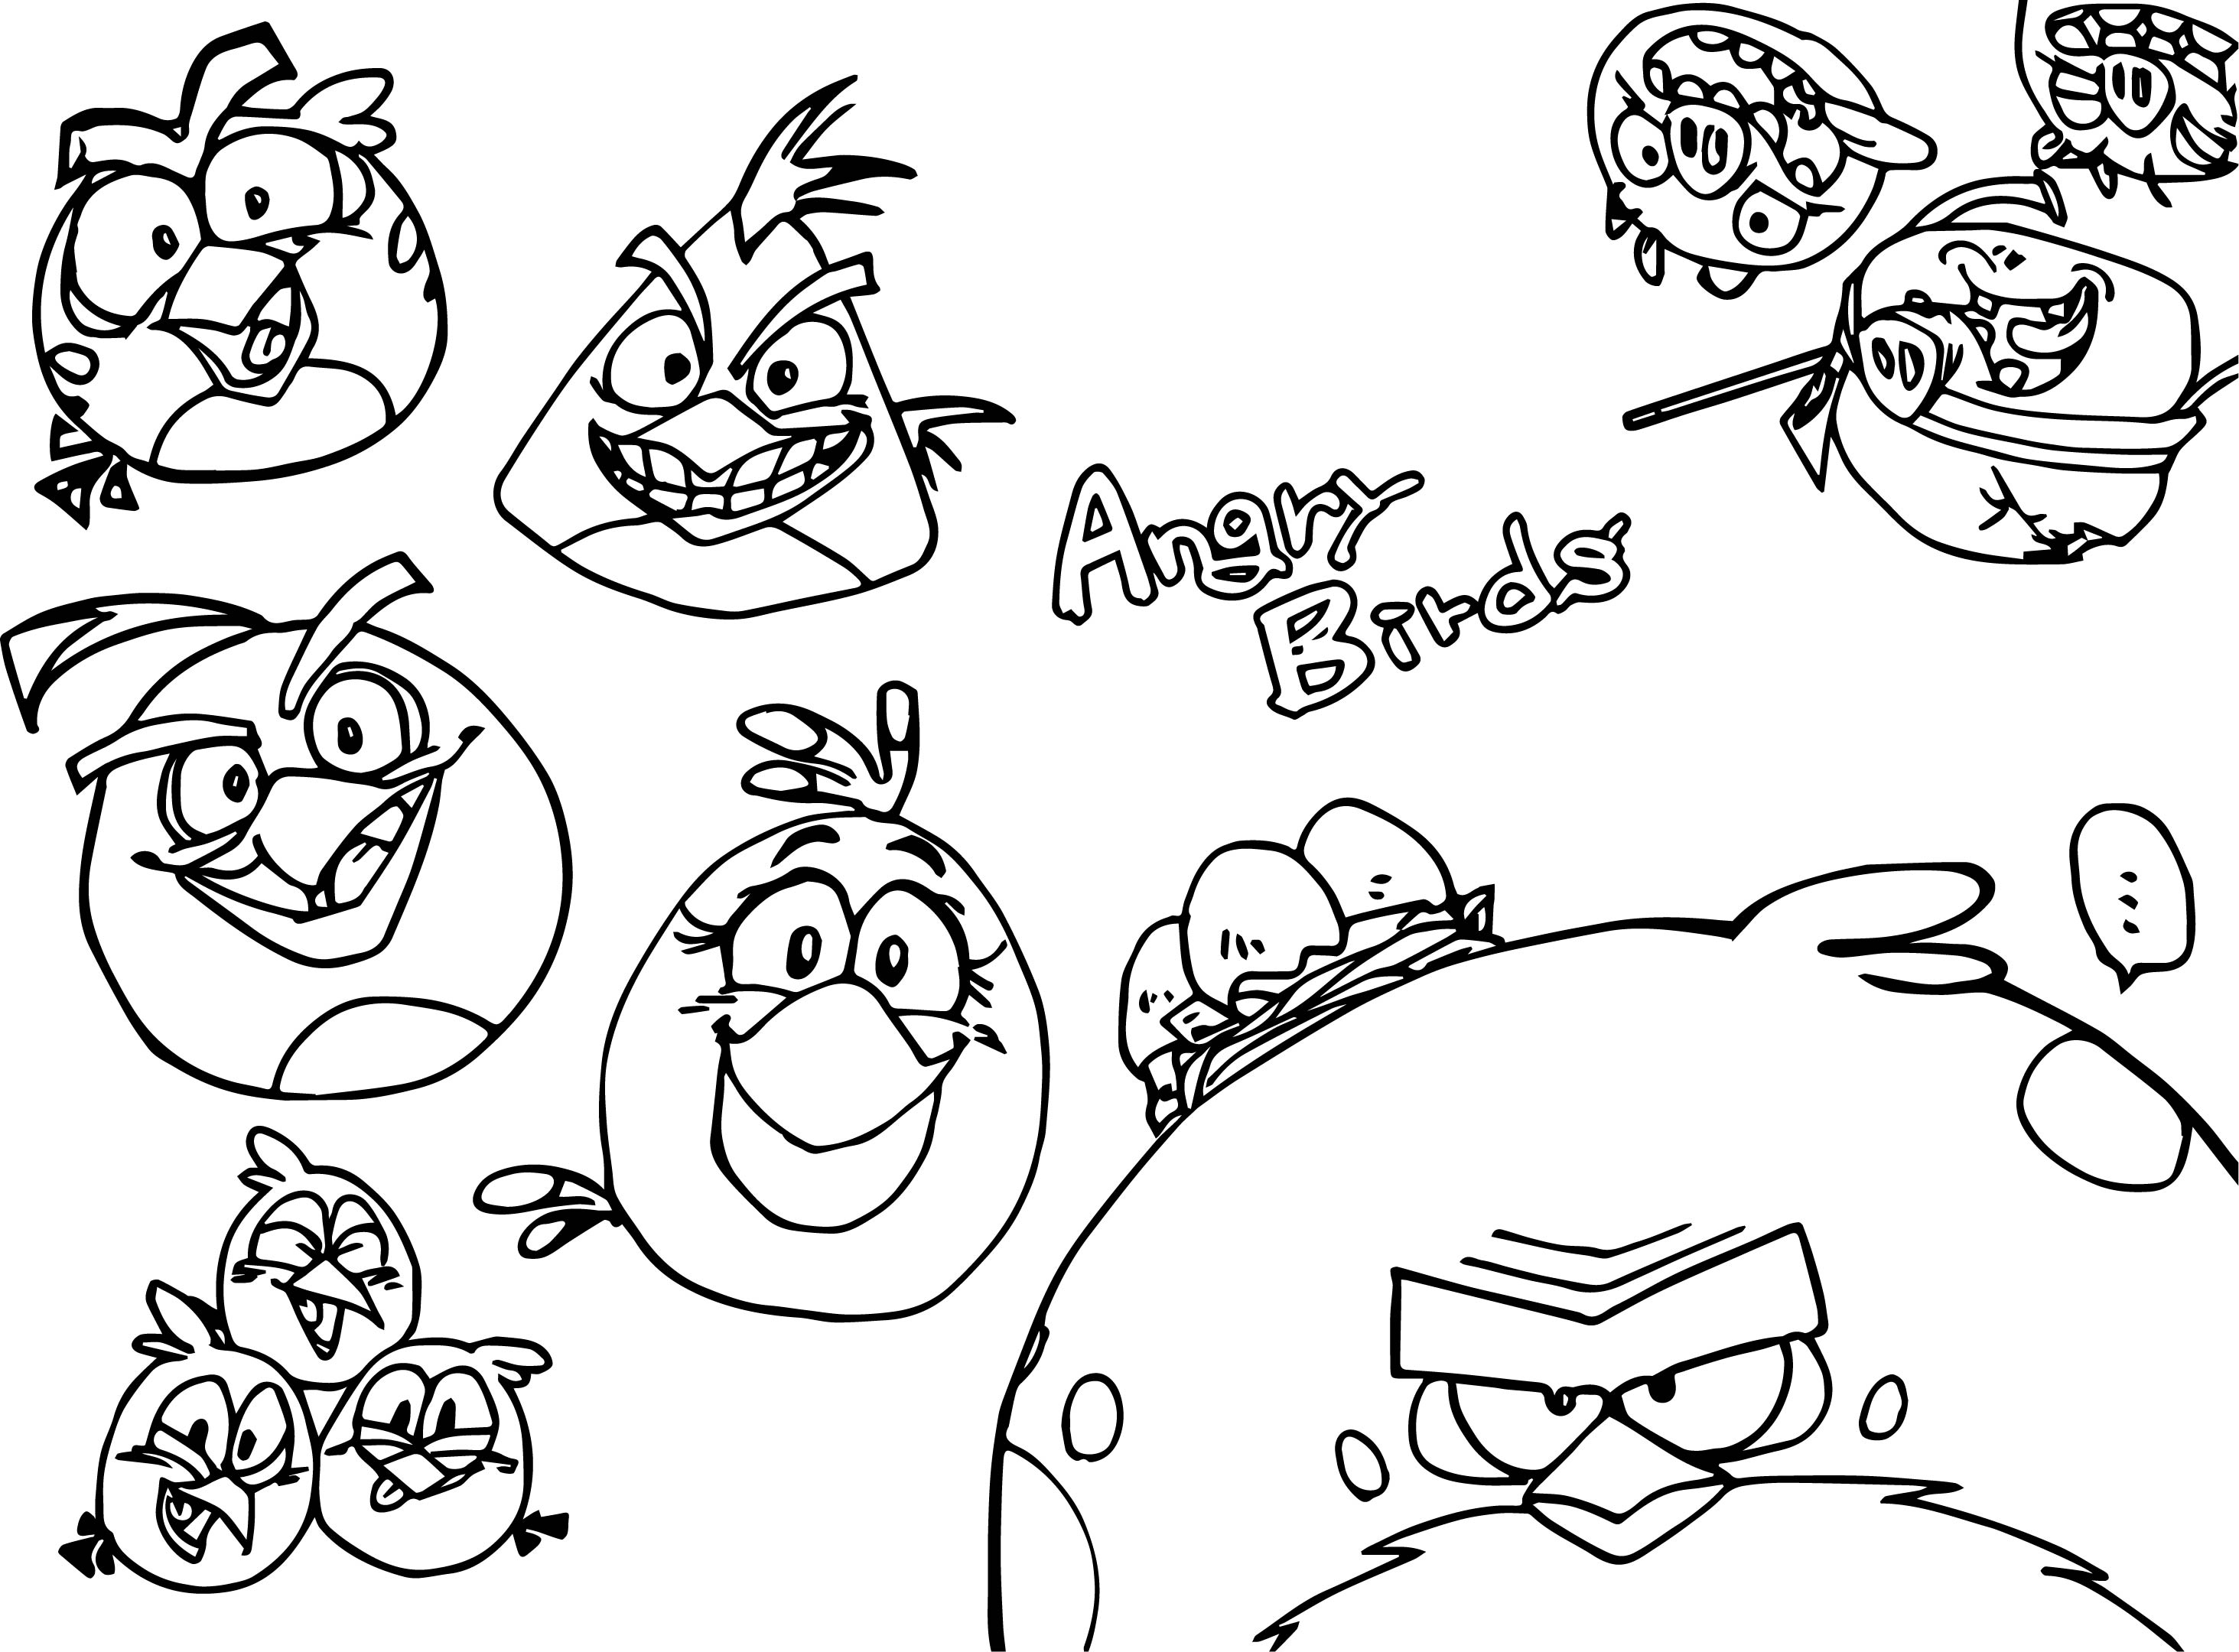 Angry birds photo coloring page for Angry birds rio coloring pages